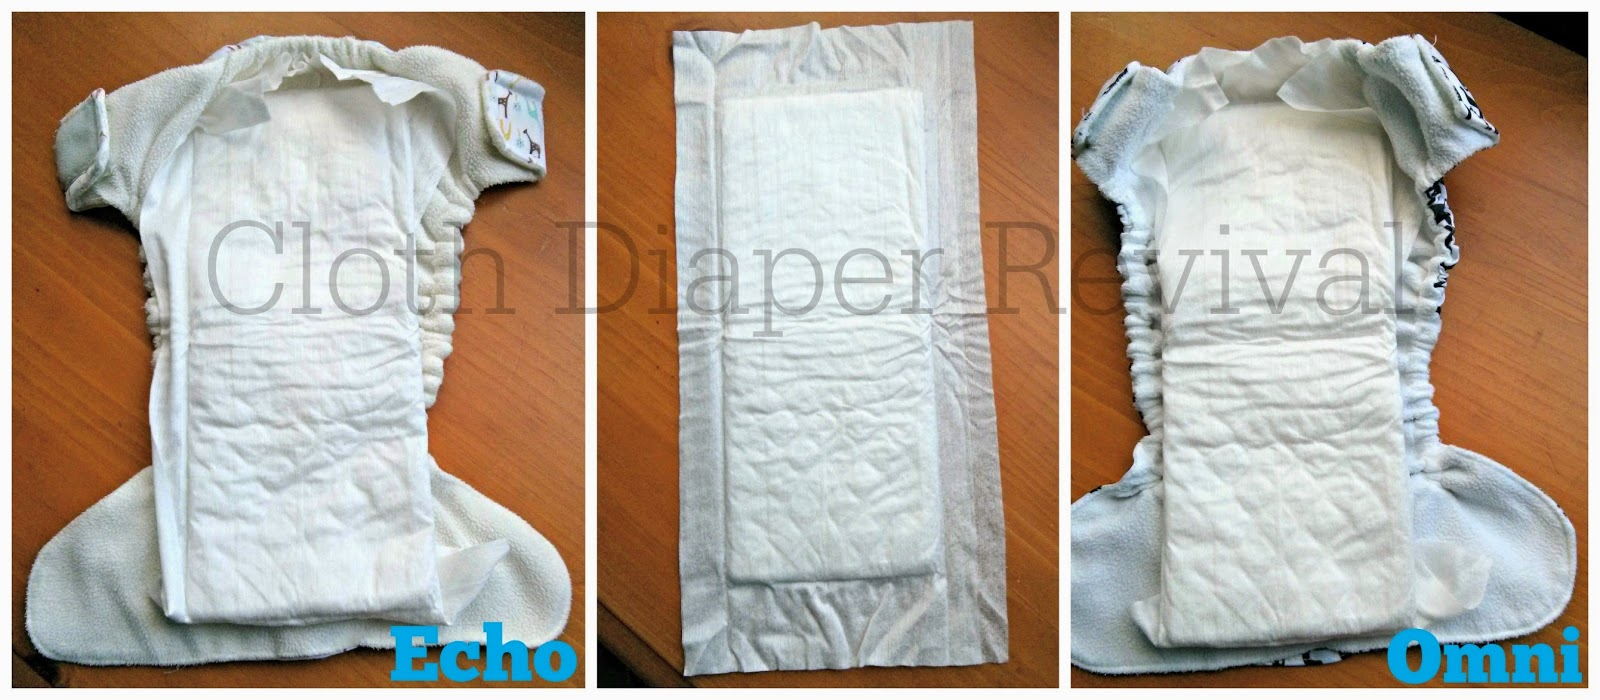 hybrid cloth diaper